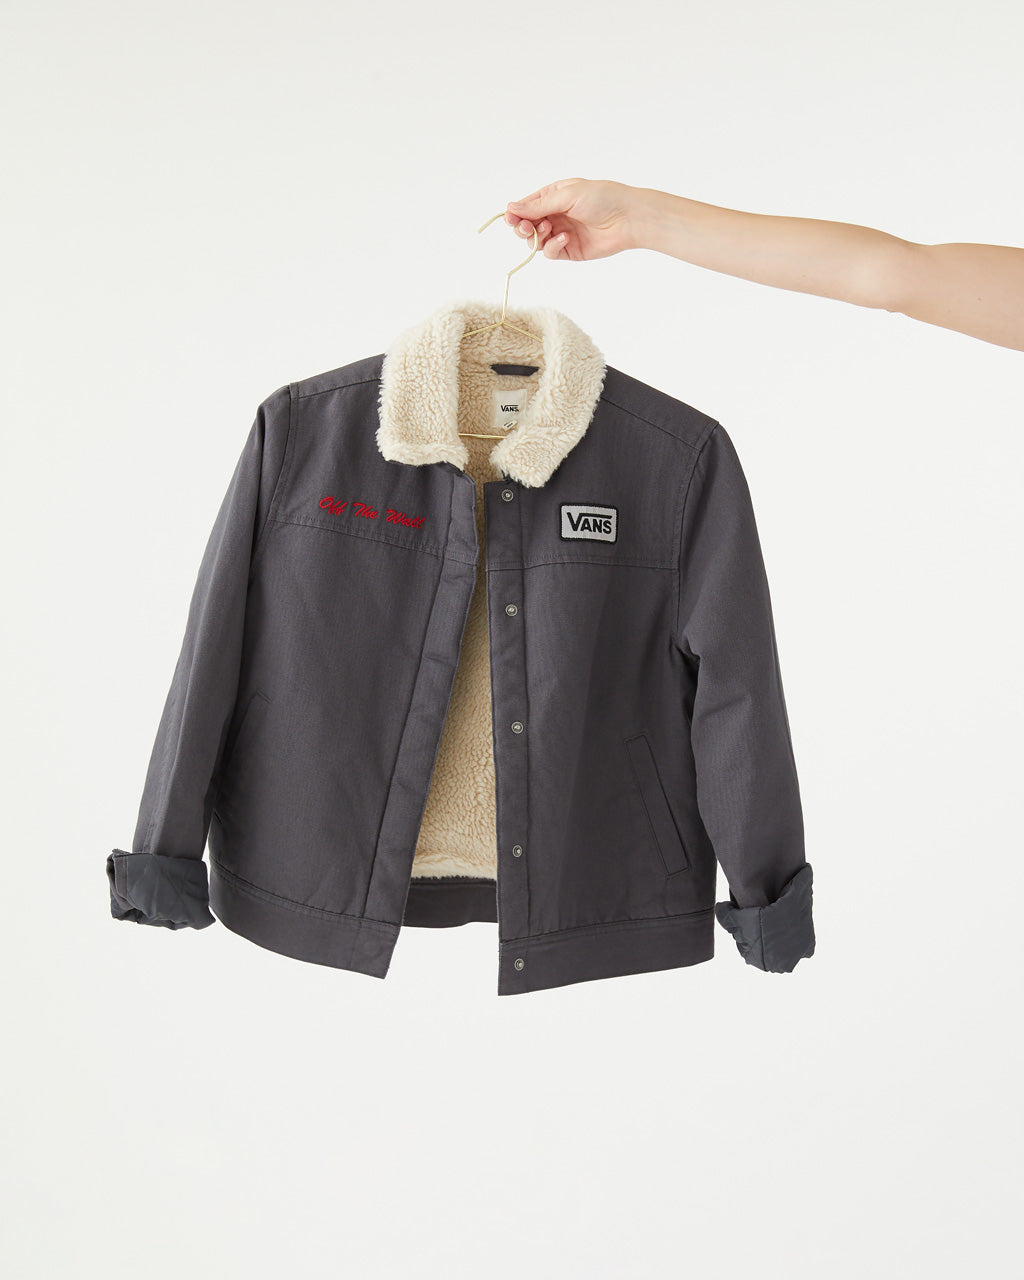 Asphalt oil change jacket with sherpa collar and lining.